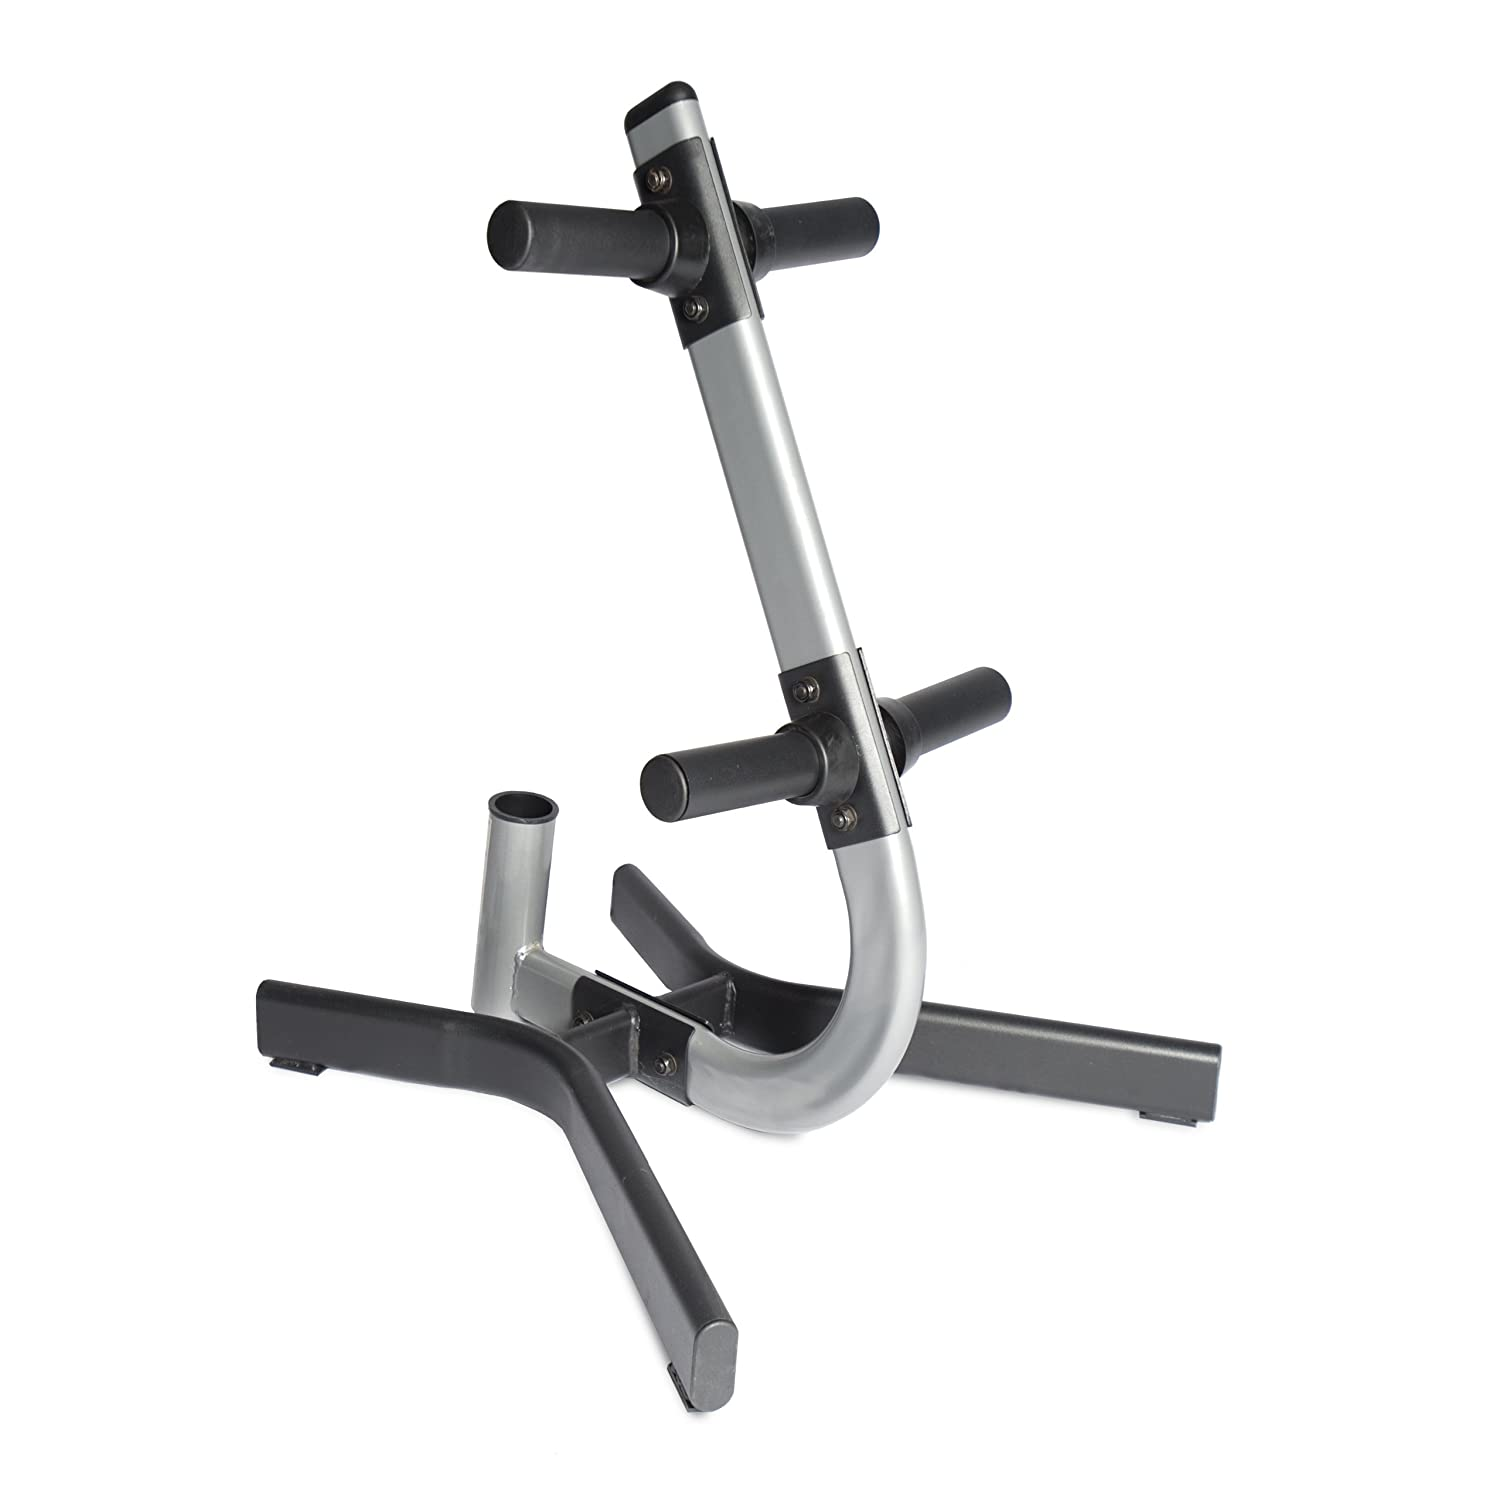 CAP Barbell Olympic 2-Inch Plate and Bar Storage Rack RK-G19B